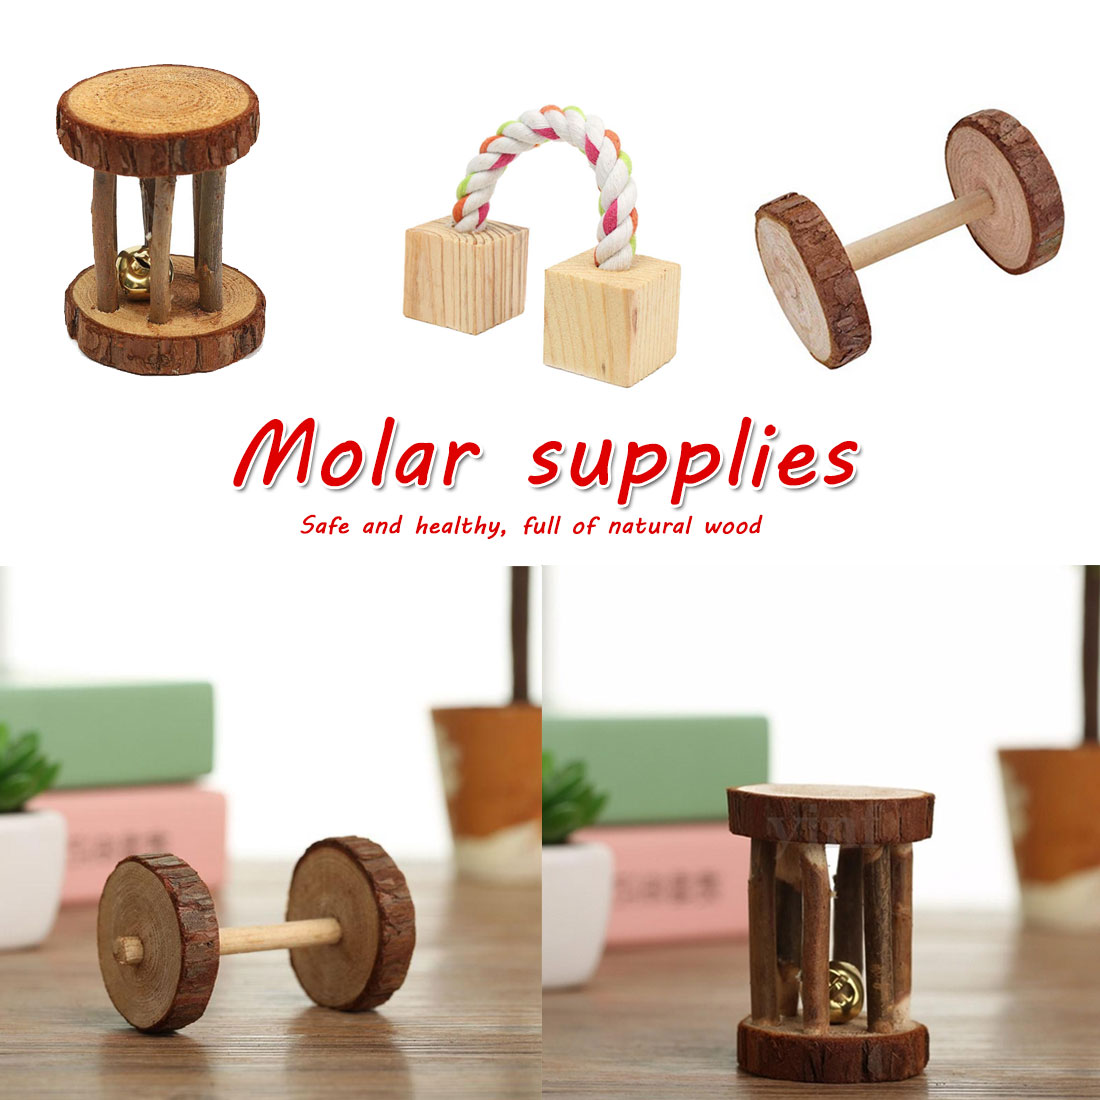 Natural Wooden  Small Pet Molars Supplies Cute Rabbits Toys Pine Dumbells Unicycle Bell Roller Chew Toys For Guinea Pigs Rat